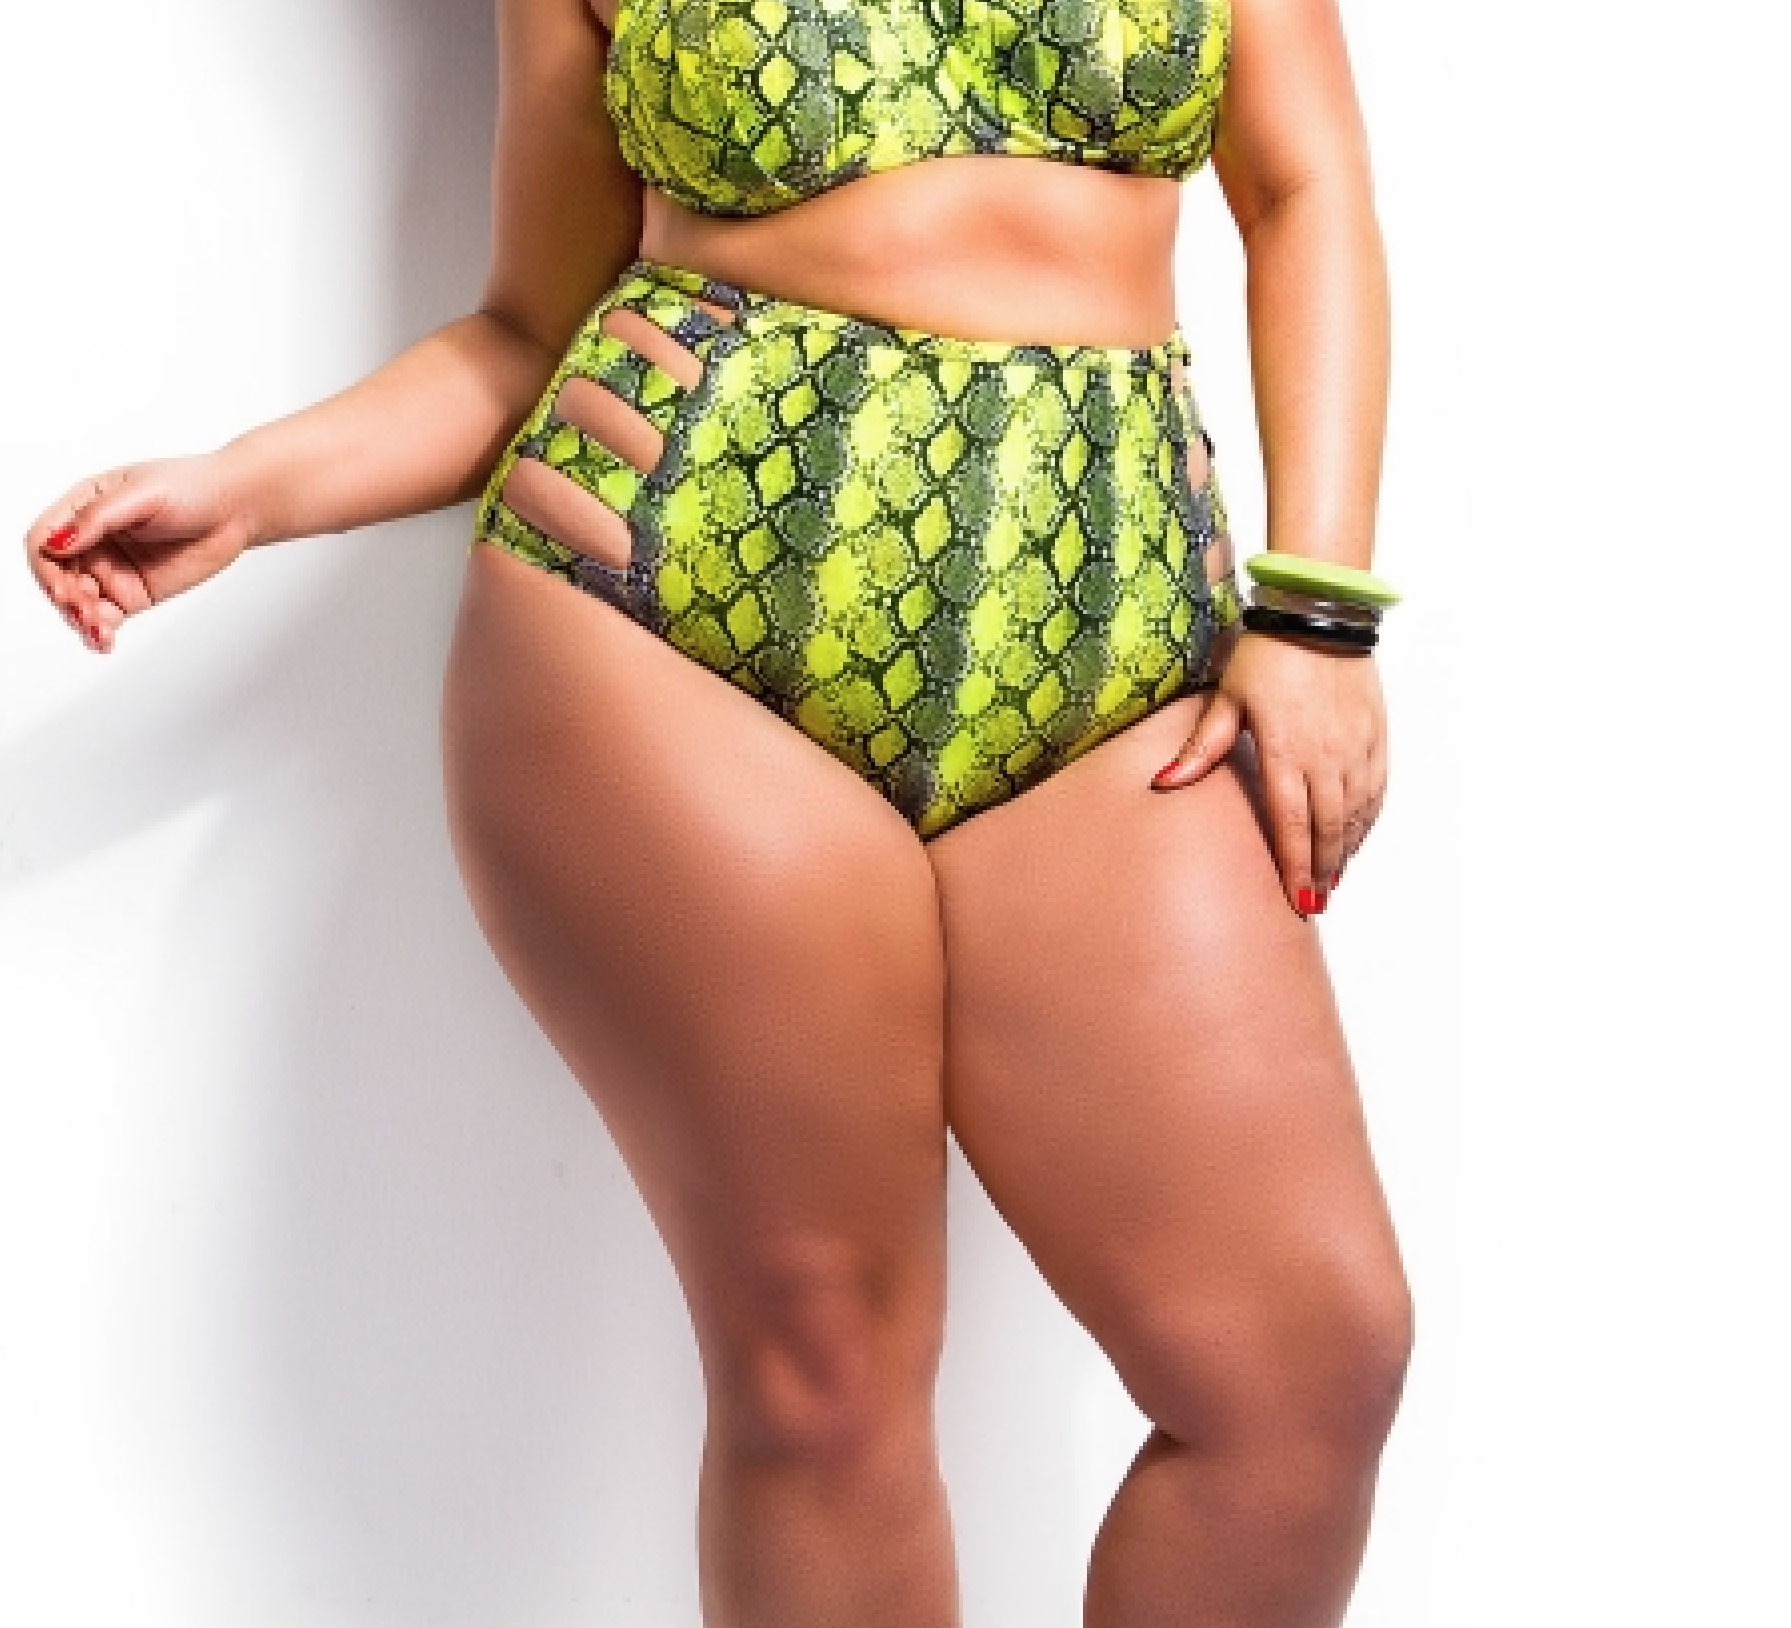 Curvy Fat Woman Bikini Model Cellulite Photoshop Photoshopped Skin Smooth